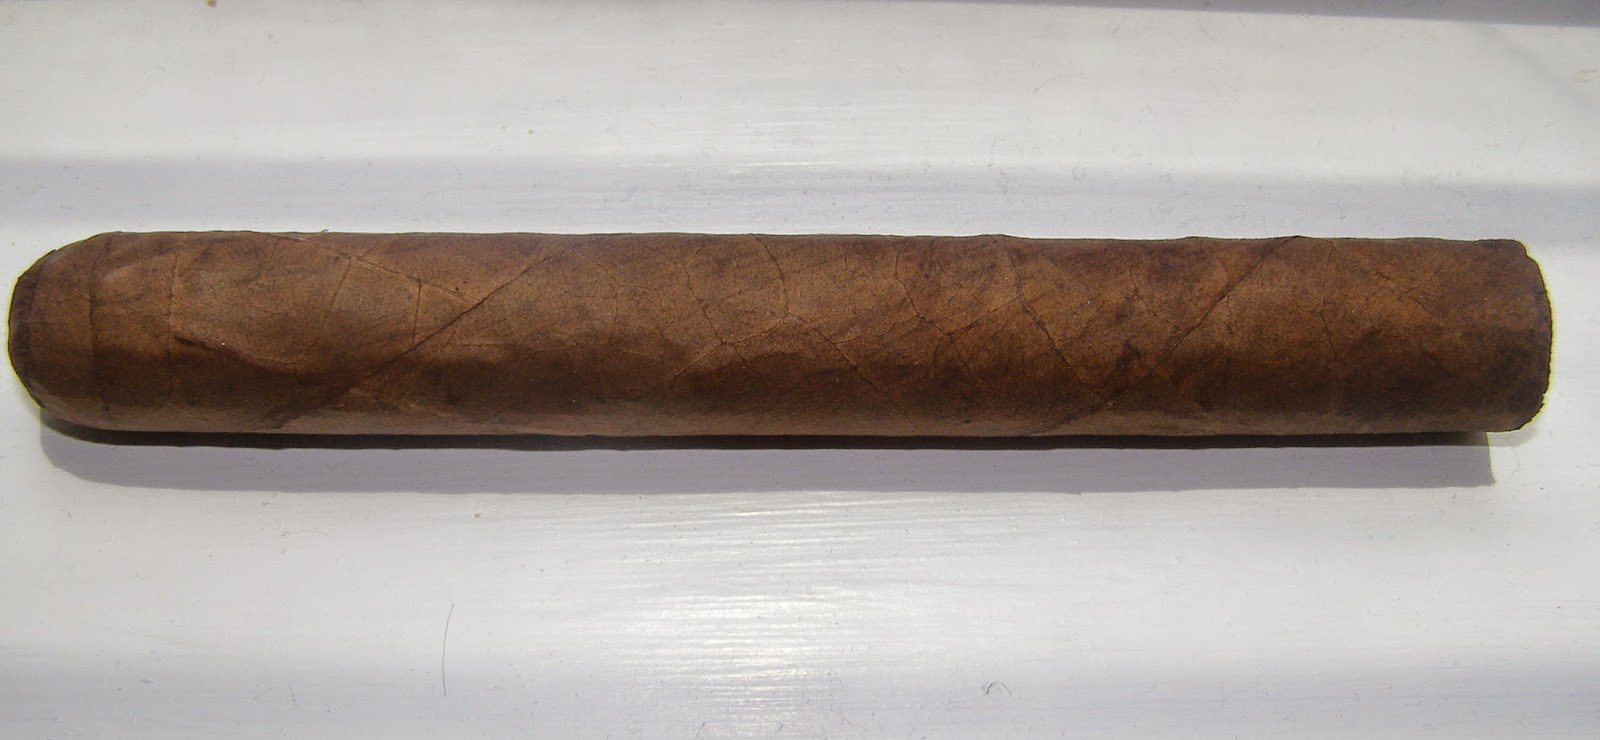 Cigar Review: Project 7 by Noel Rojas